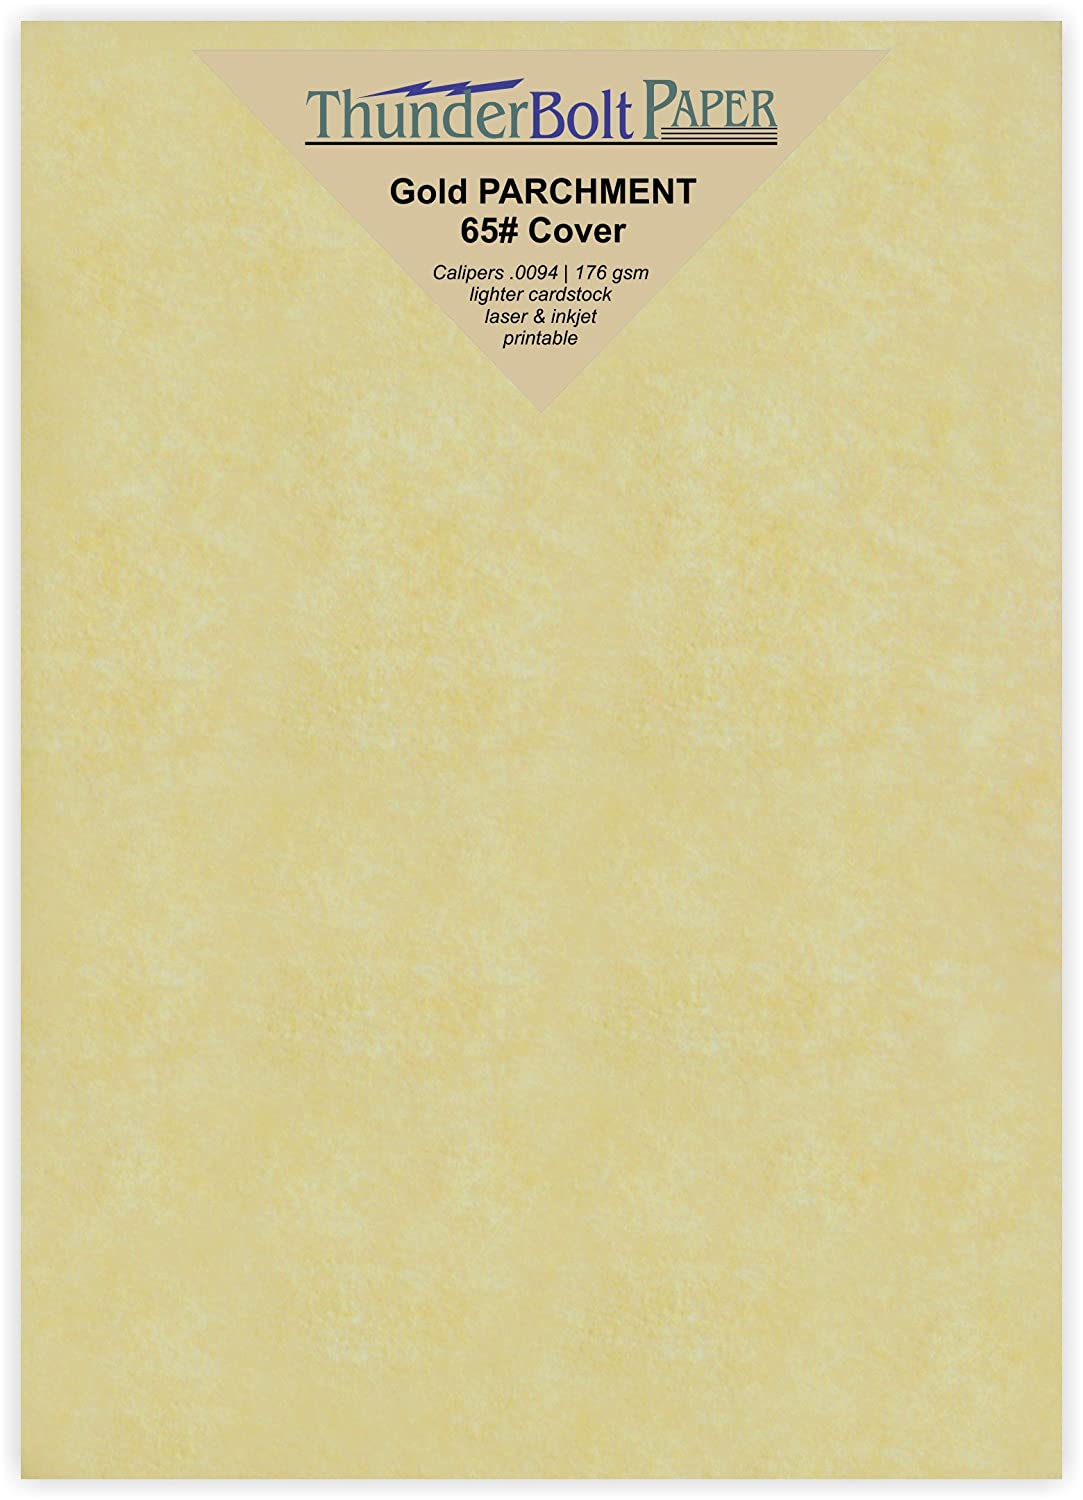 Printable Cardstock Colored Sheets Old Parchment Semblance 5X7 Inches 100 Gold Parchment 65lb Cover Weight Paper Photo|Card|Frame Size 5 X 7